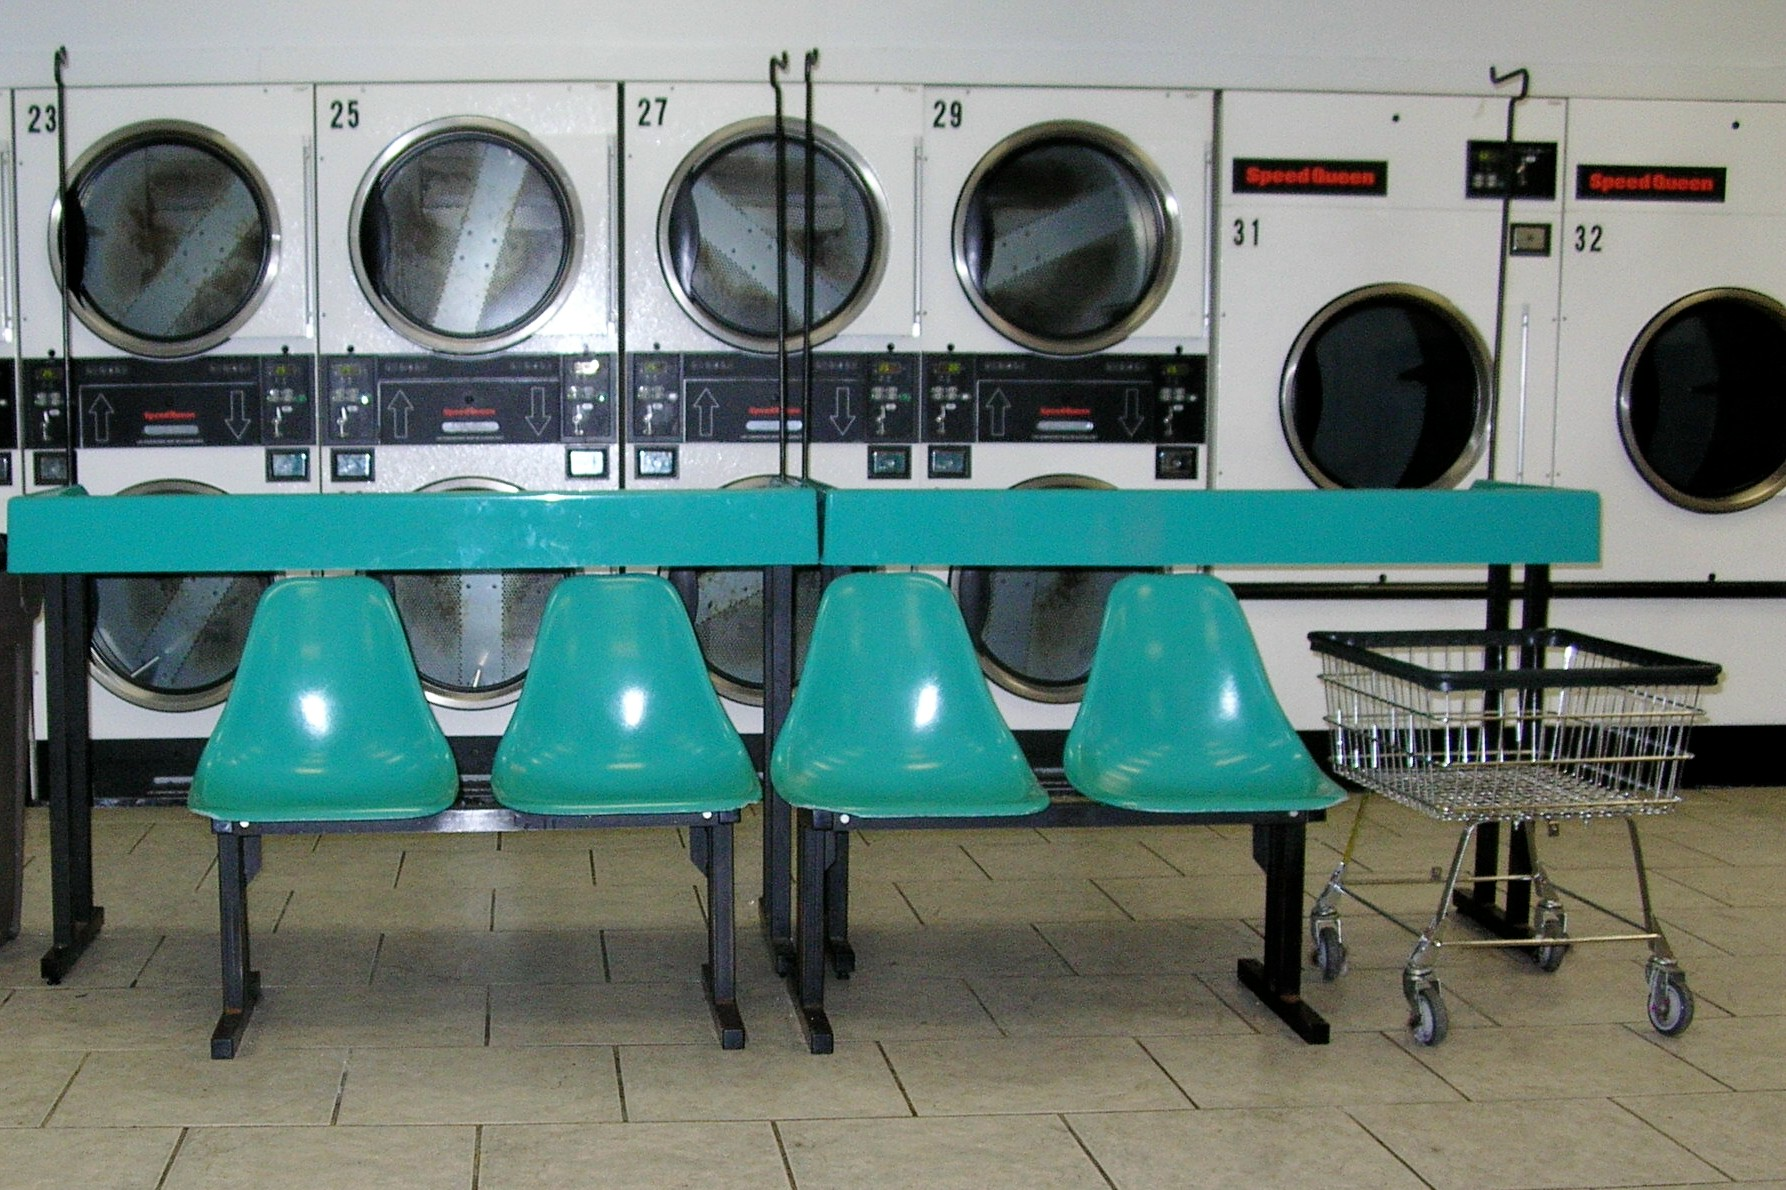 Incredible Low Rates on Laundromat Insurance!